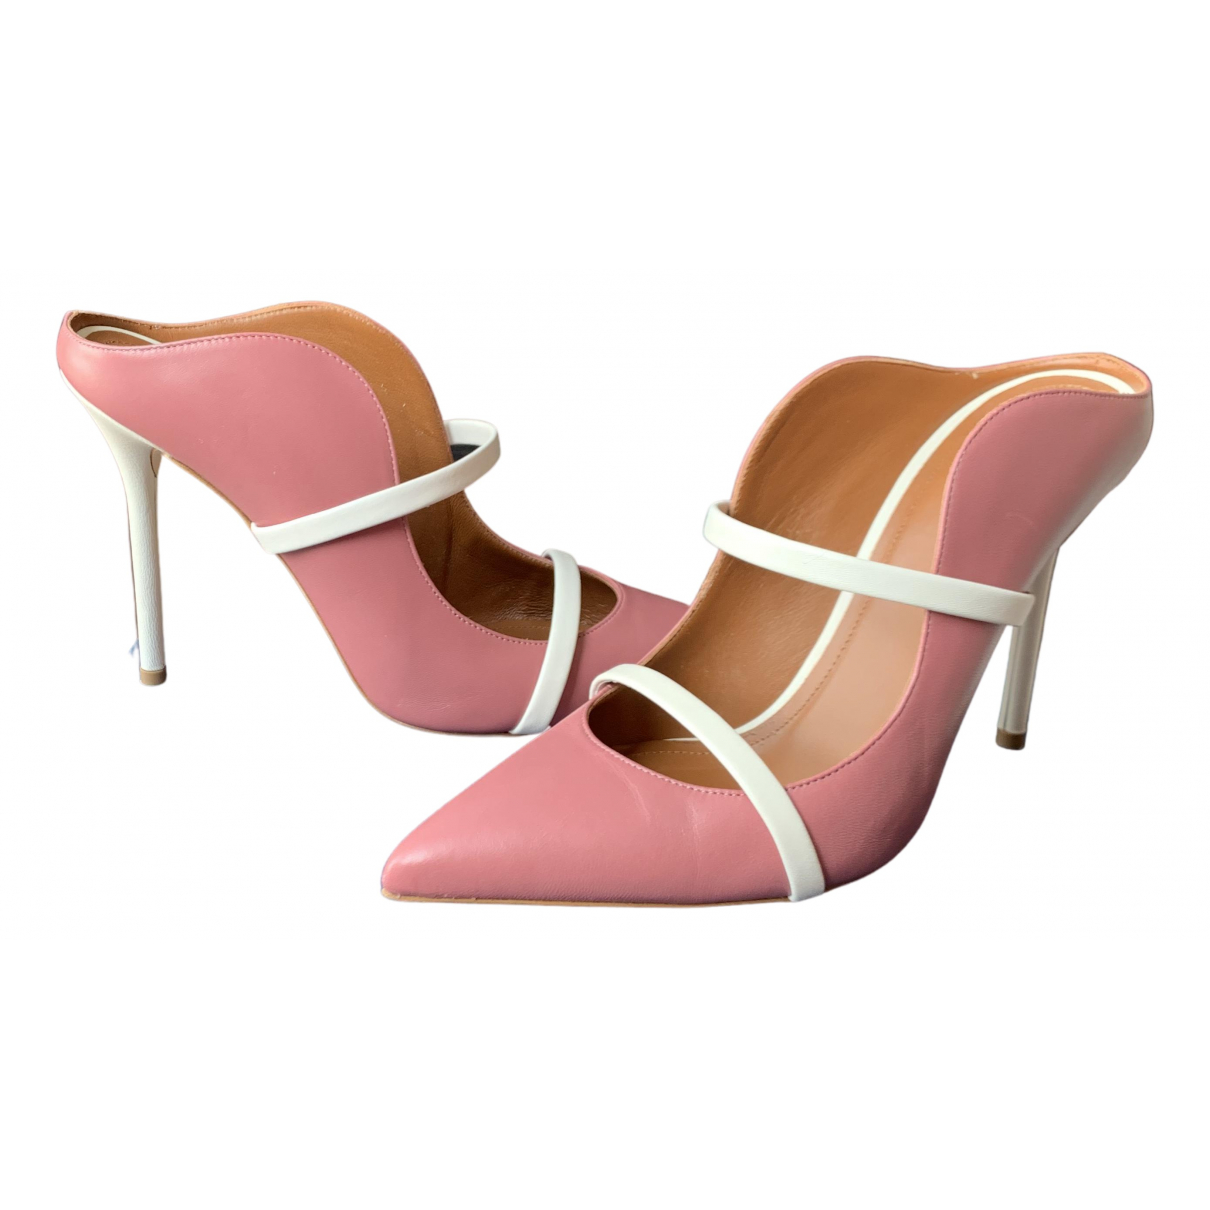 Malone Souliers Maureen Beige Leather Mules & Clogs for Women 5 UK